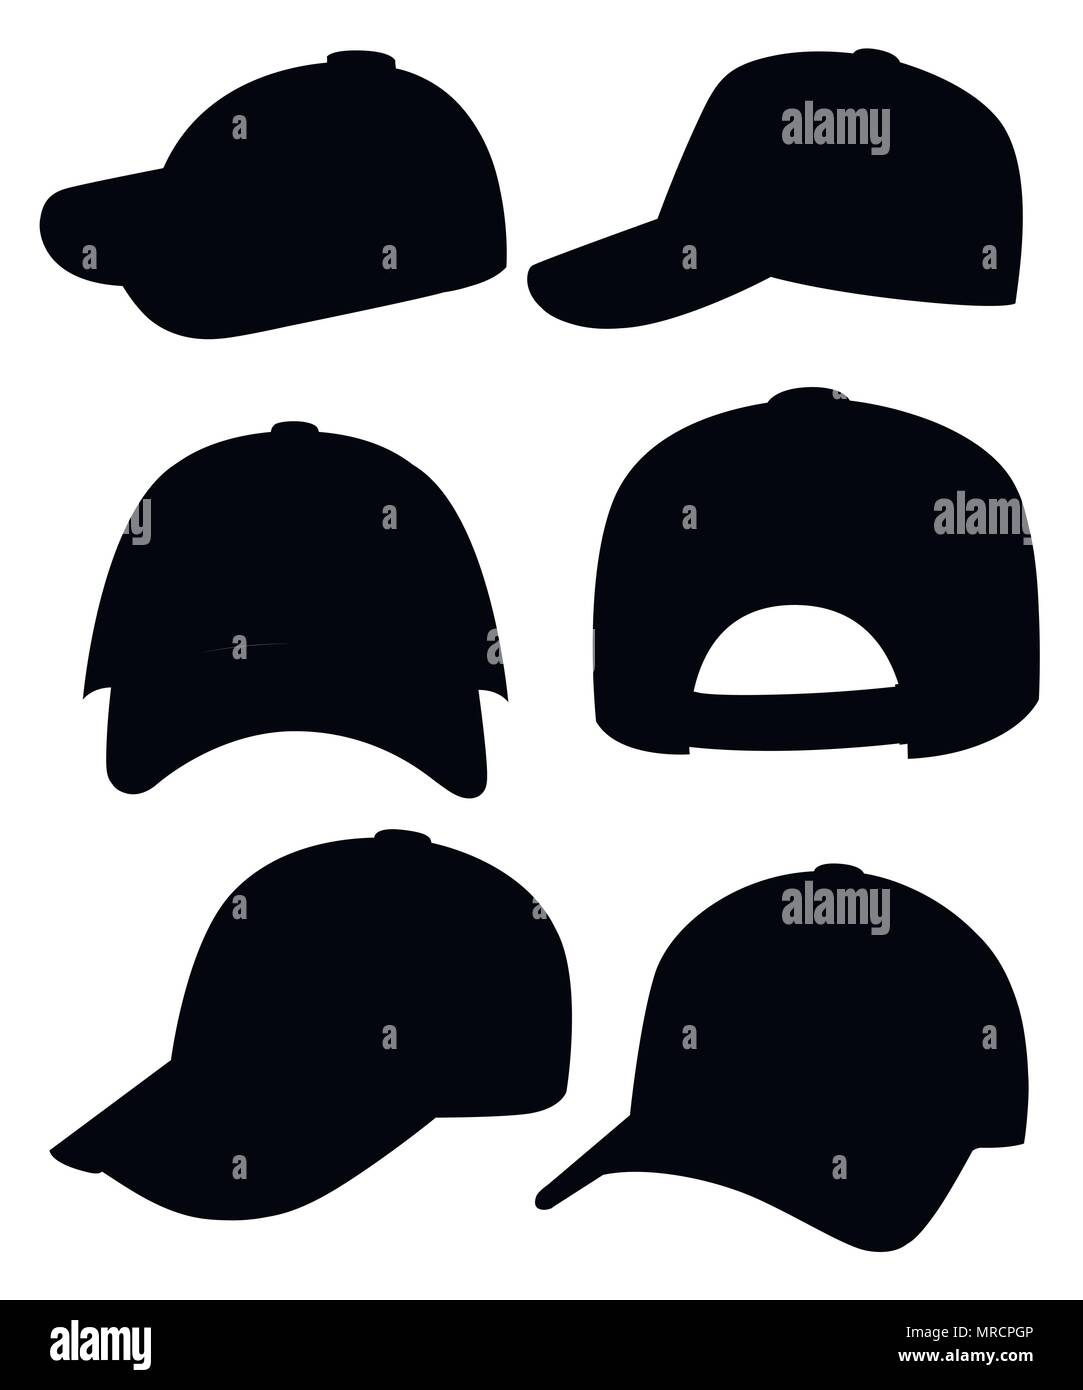 f8006a67c14 Baseball cap. Collection of various caps. Summer hats for children and